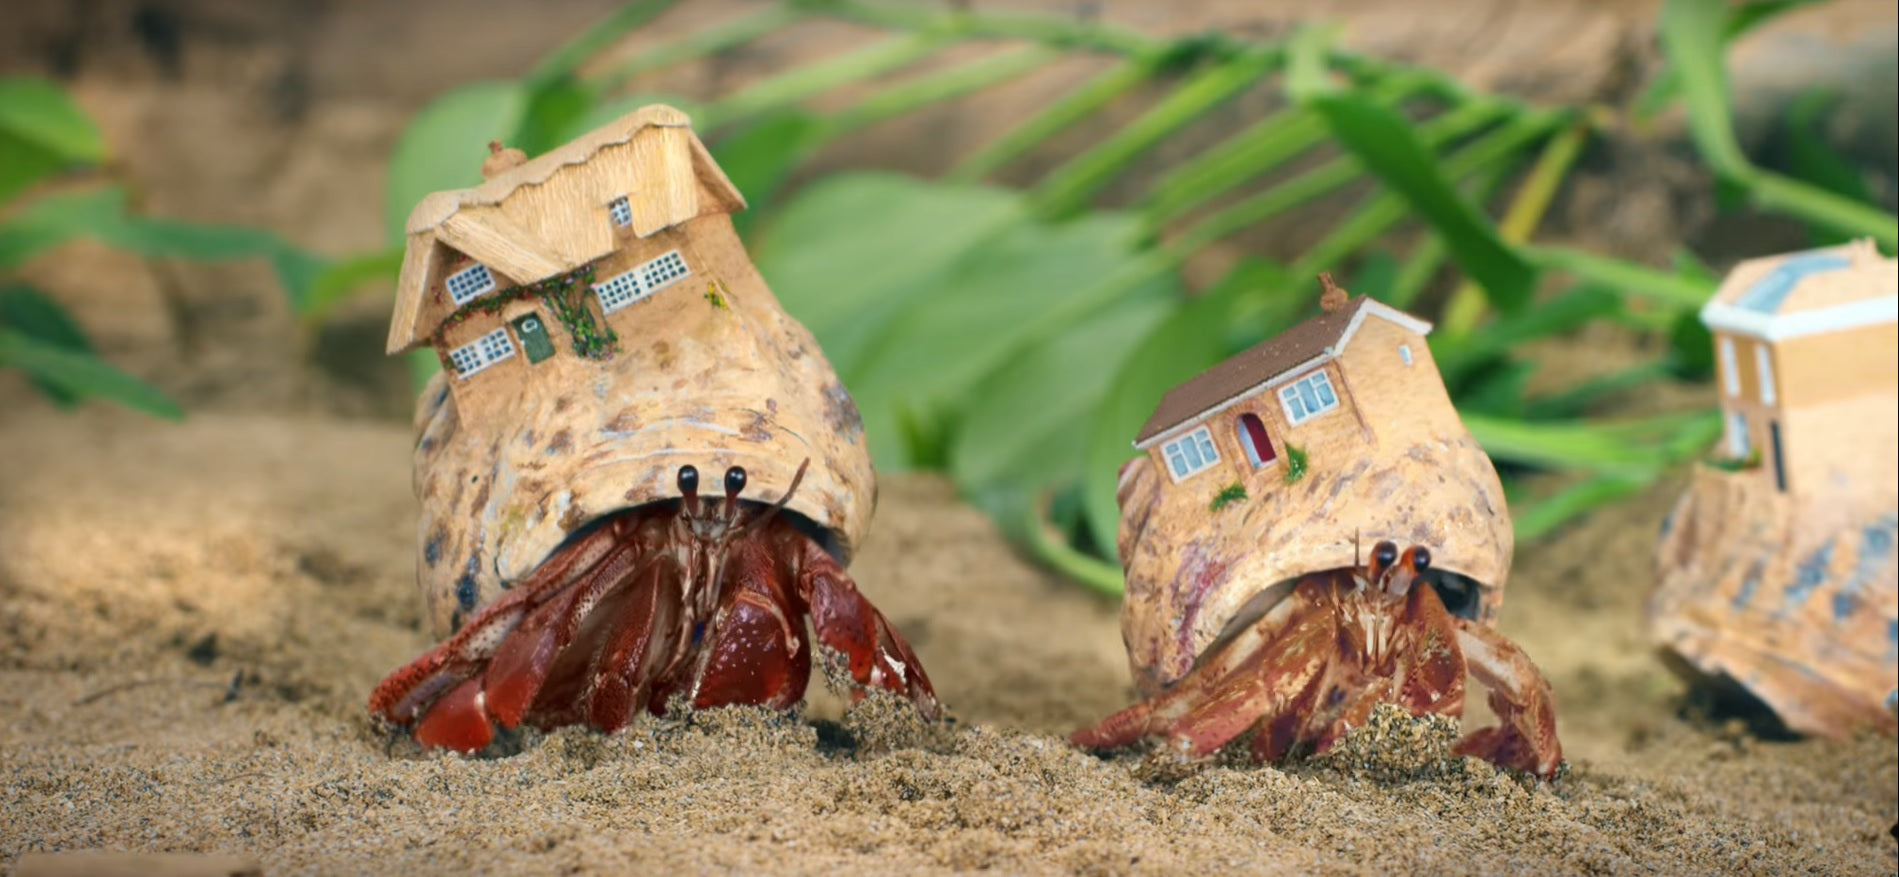 These Cute 3D Printed Hermit Crab Houses Are Irresistible